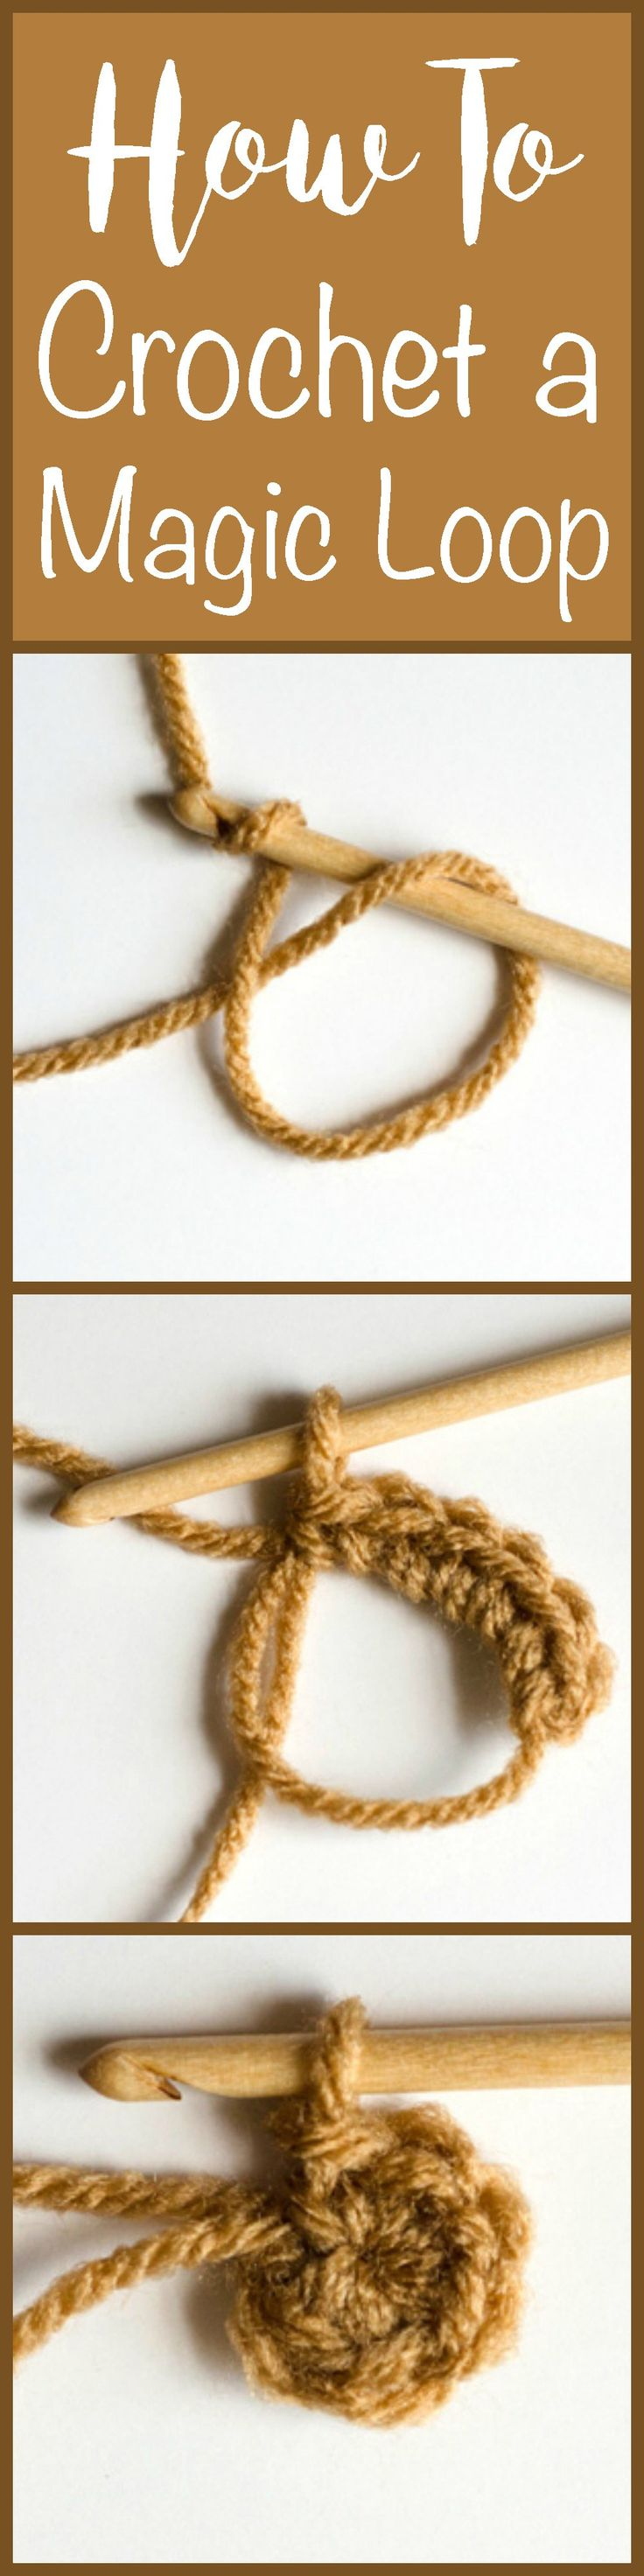 How to Crochet a Magic Ring